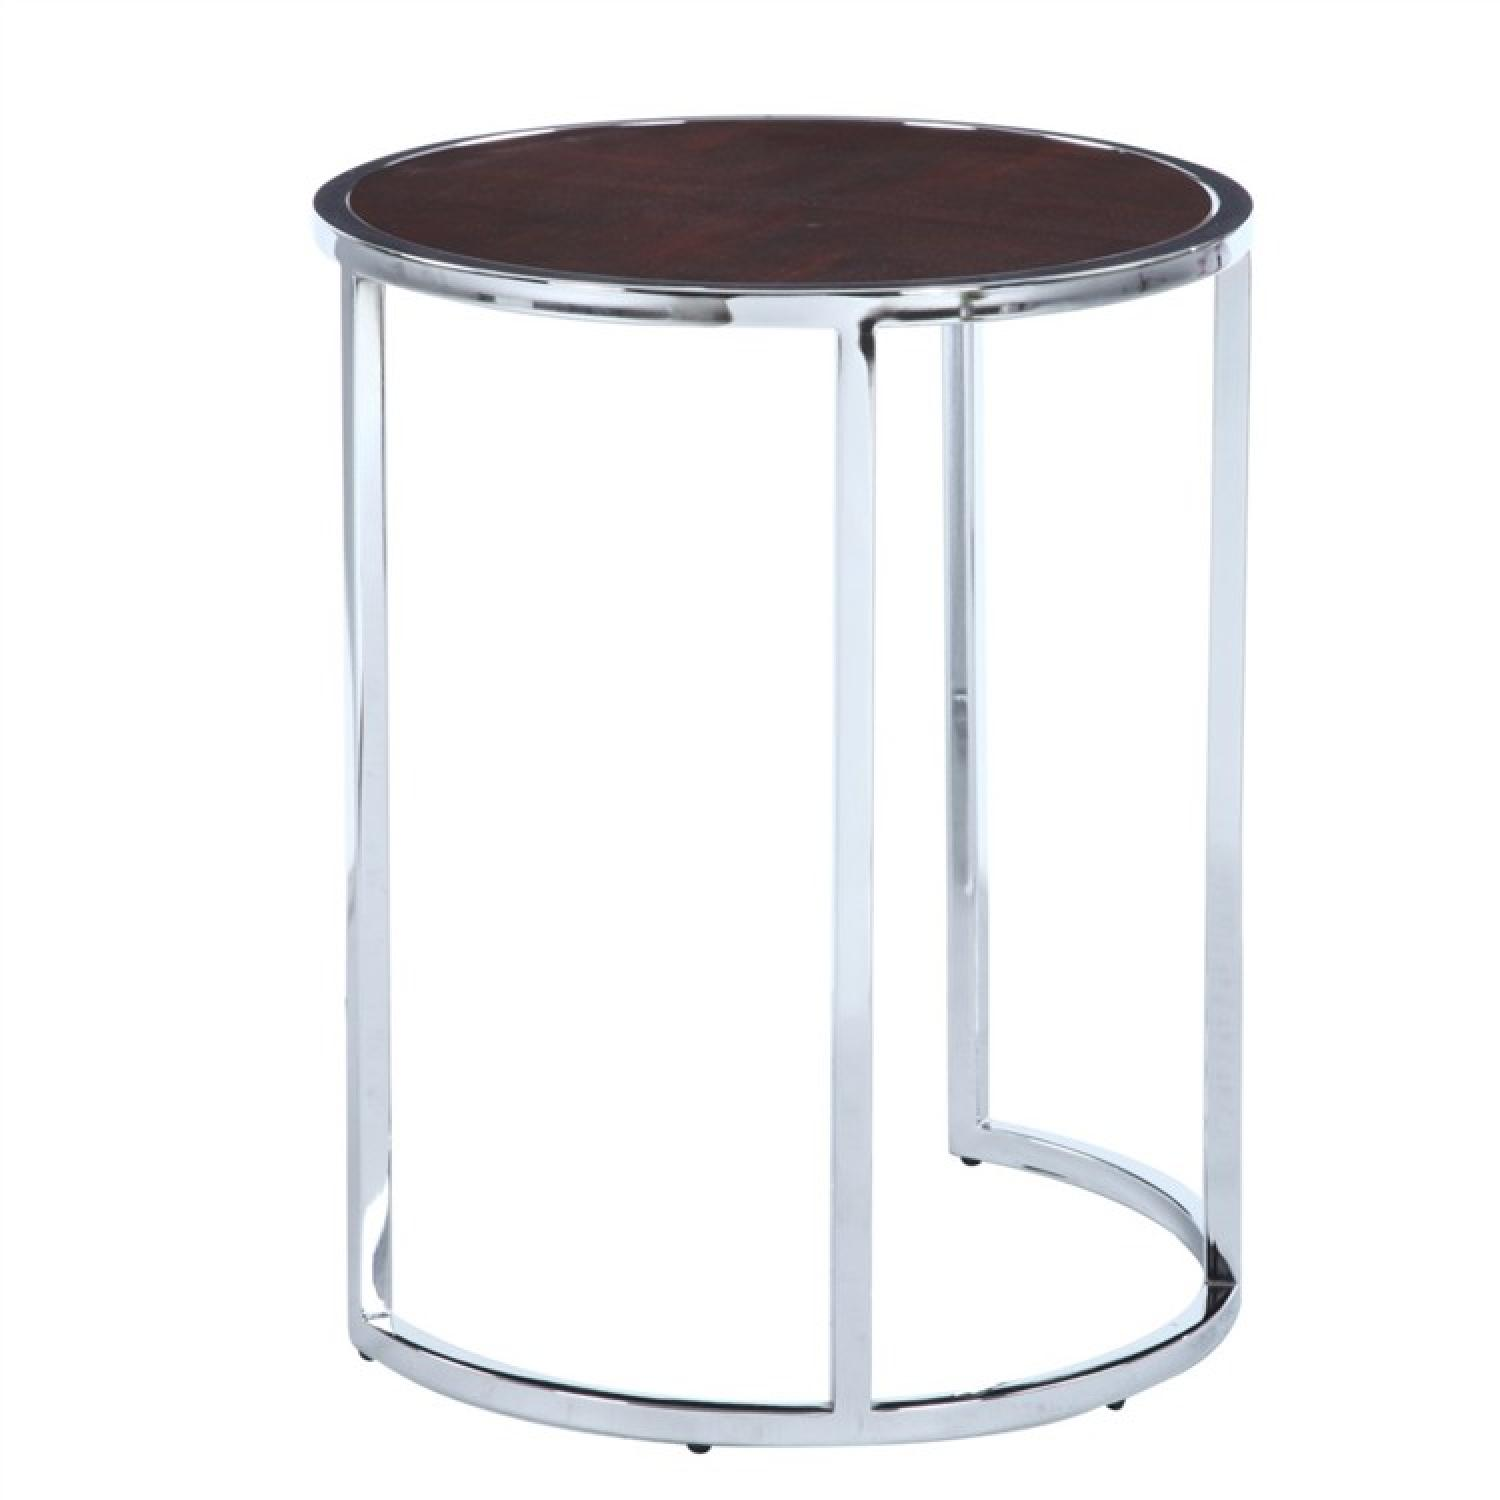 Modern Round Side Table w/ Chrome Frame & Walnut Finished To